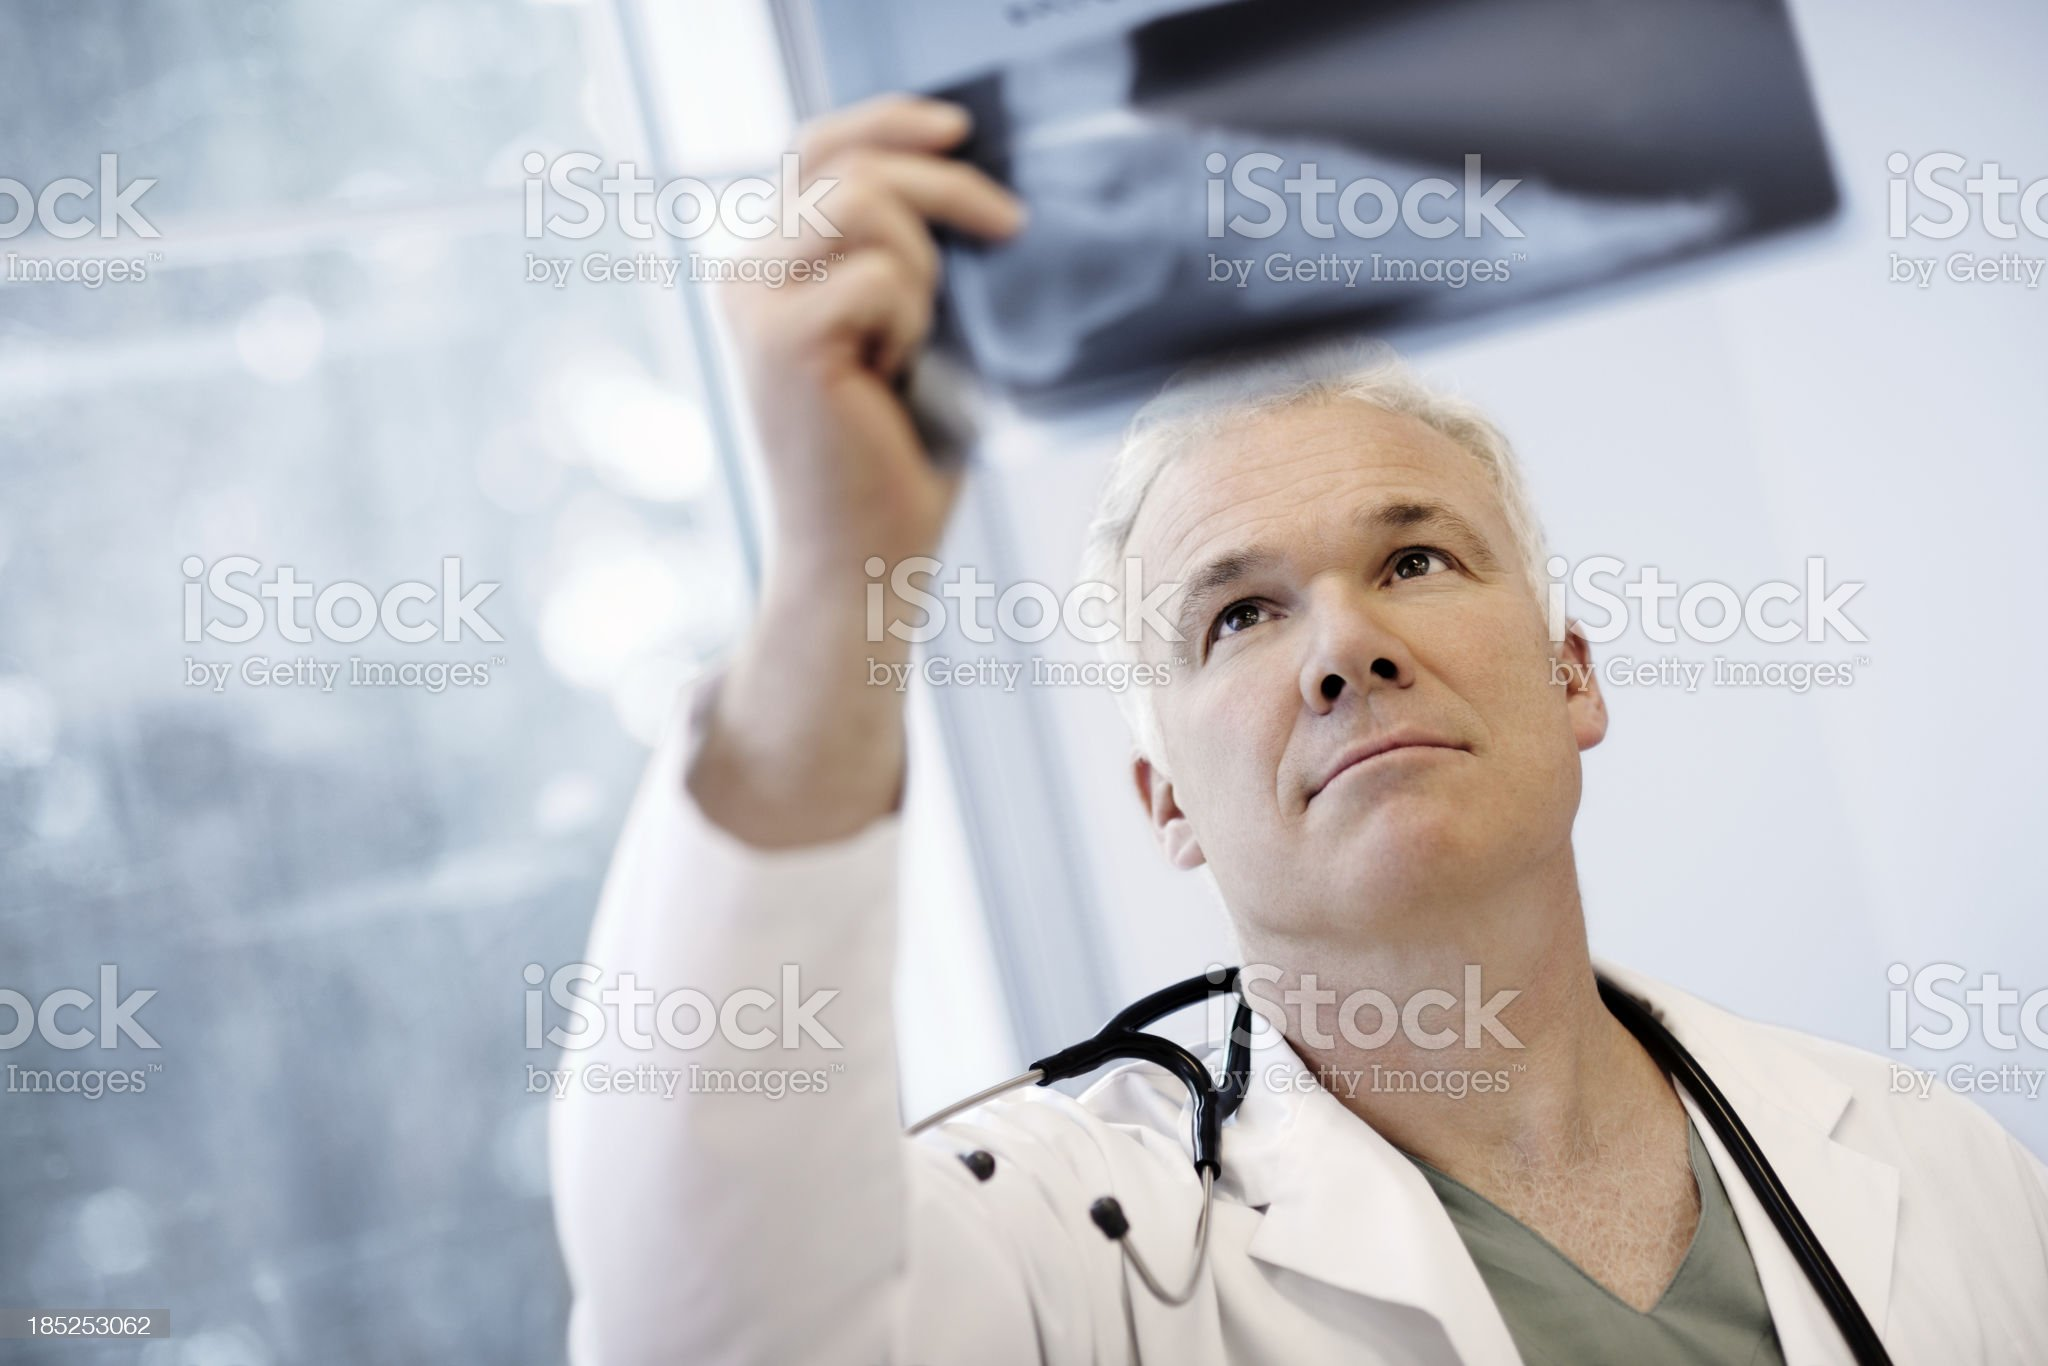 Male Doctor Examining An X-Ray Image royalty-free stock photo